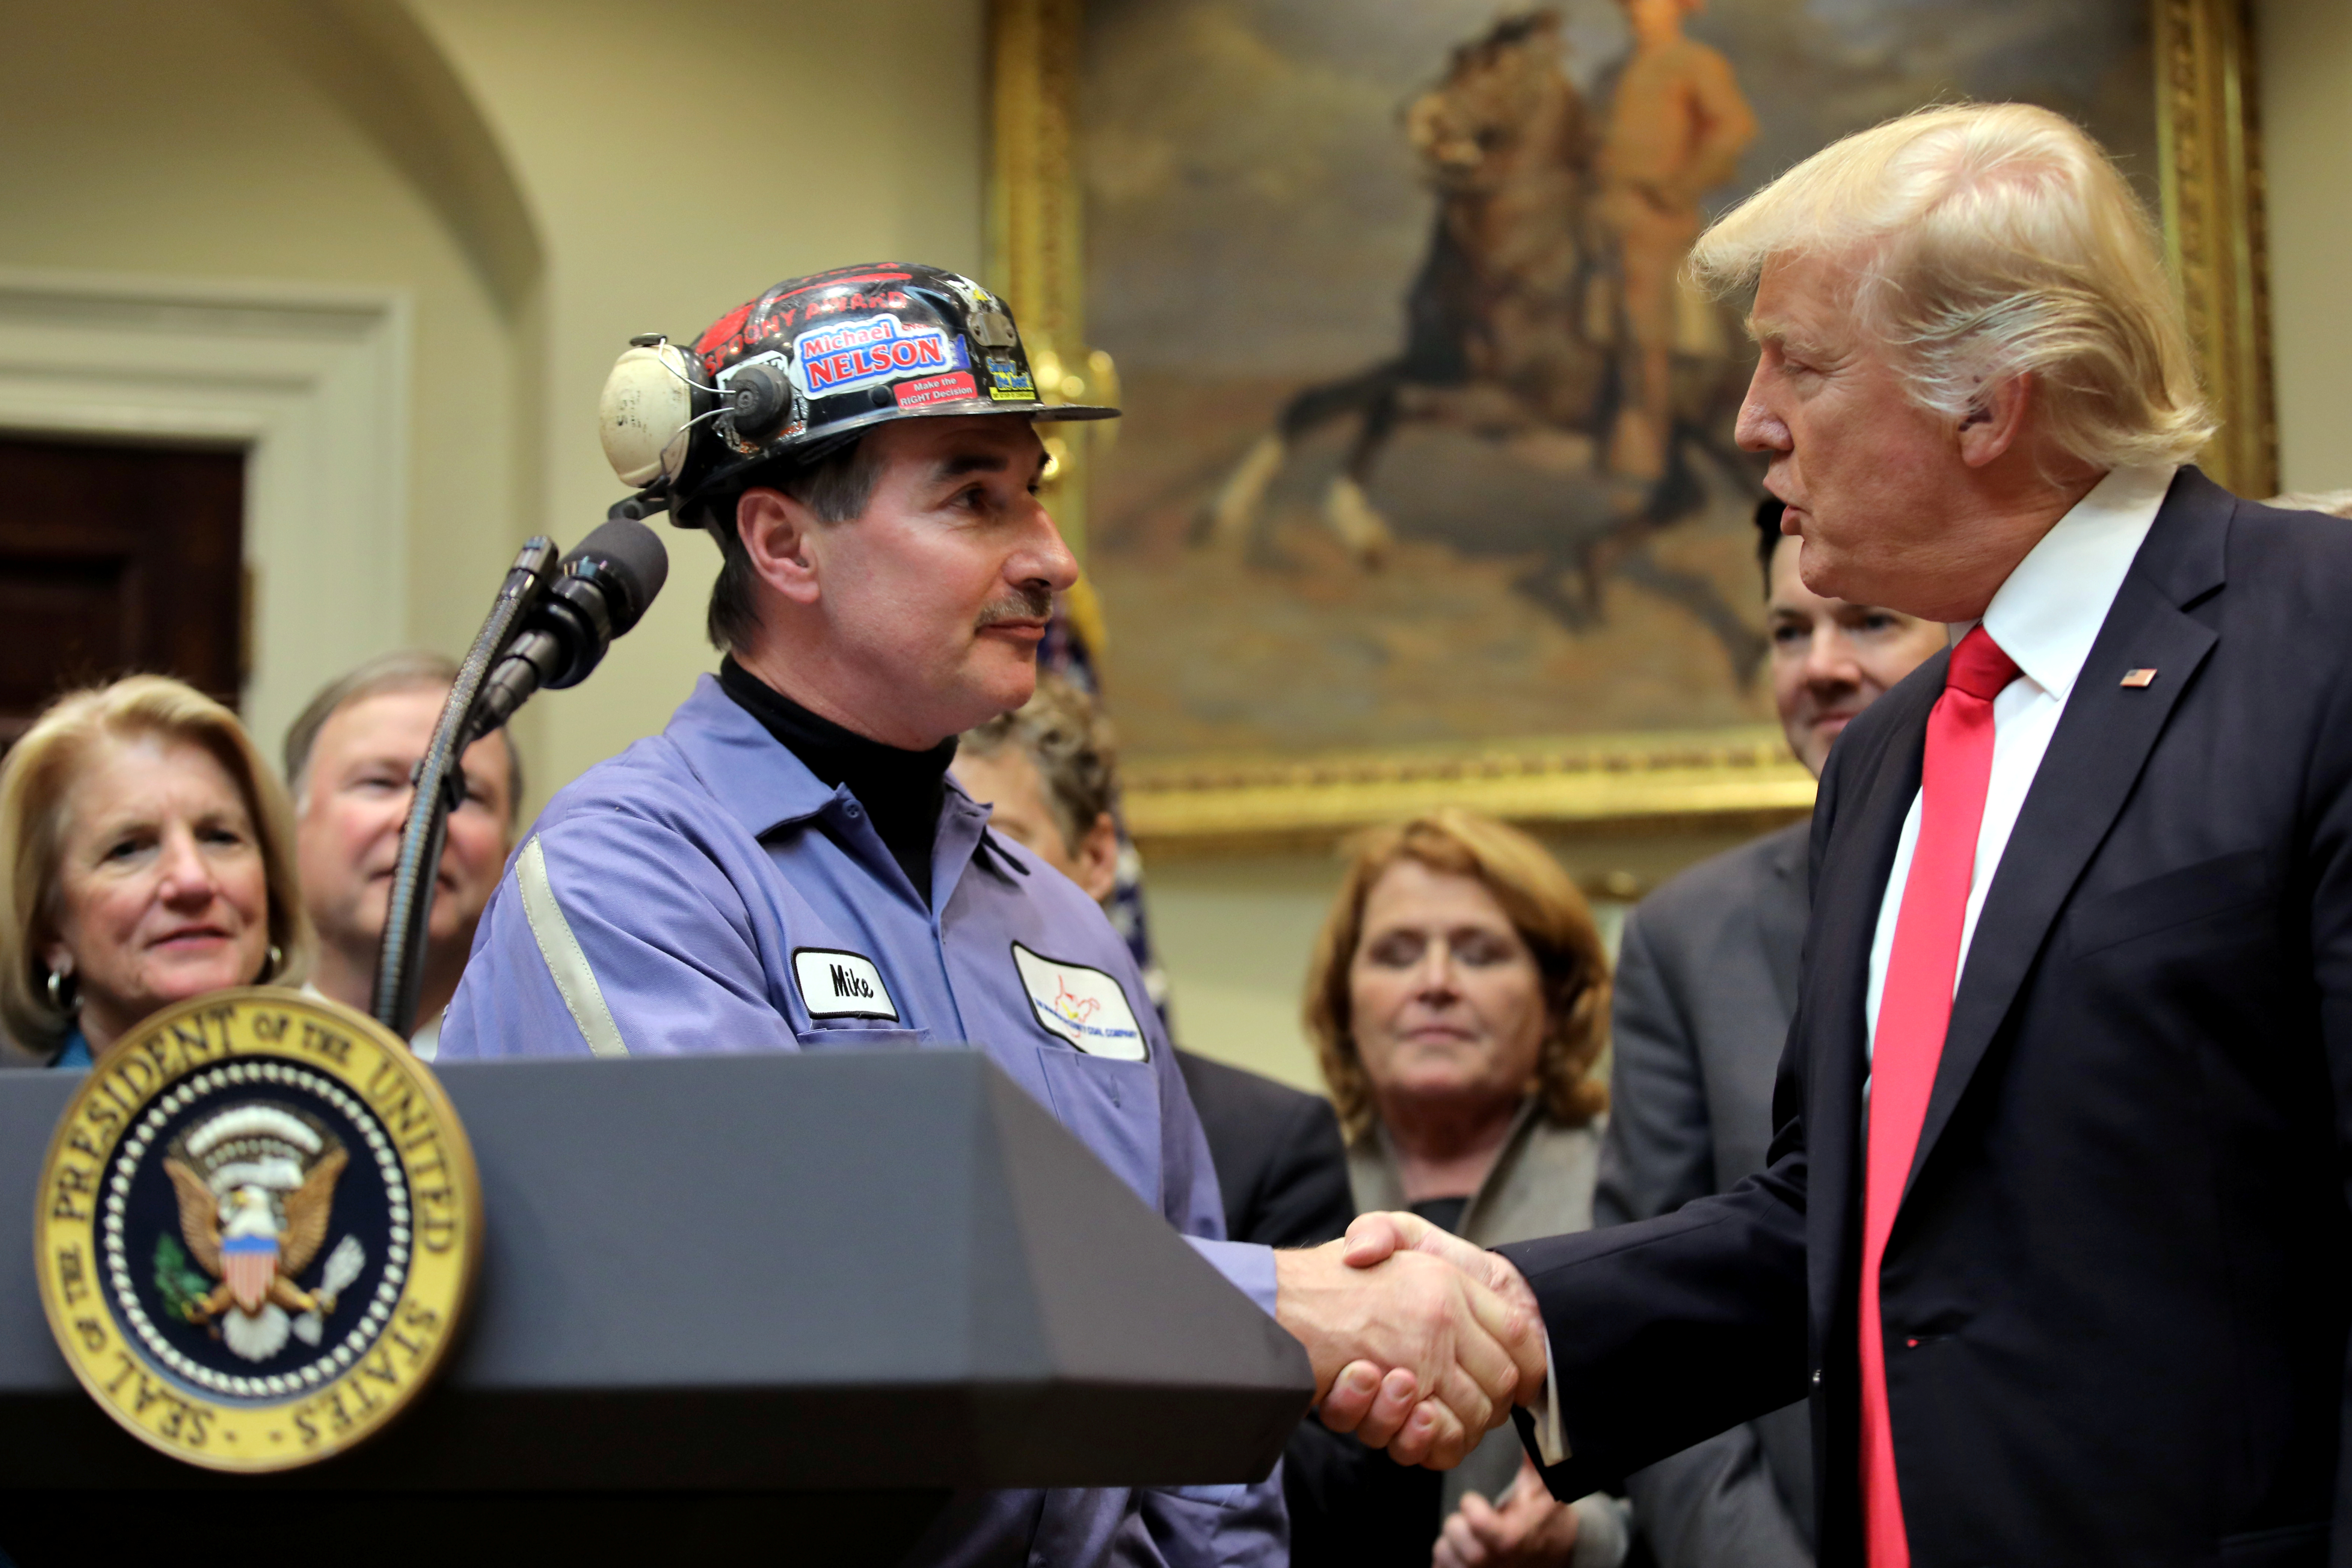 Two US coal miners, two very different perspectives on the future of coal